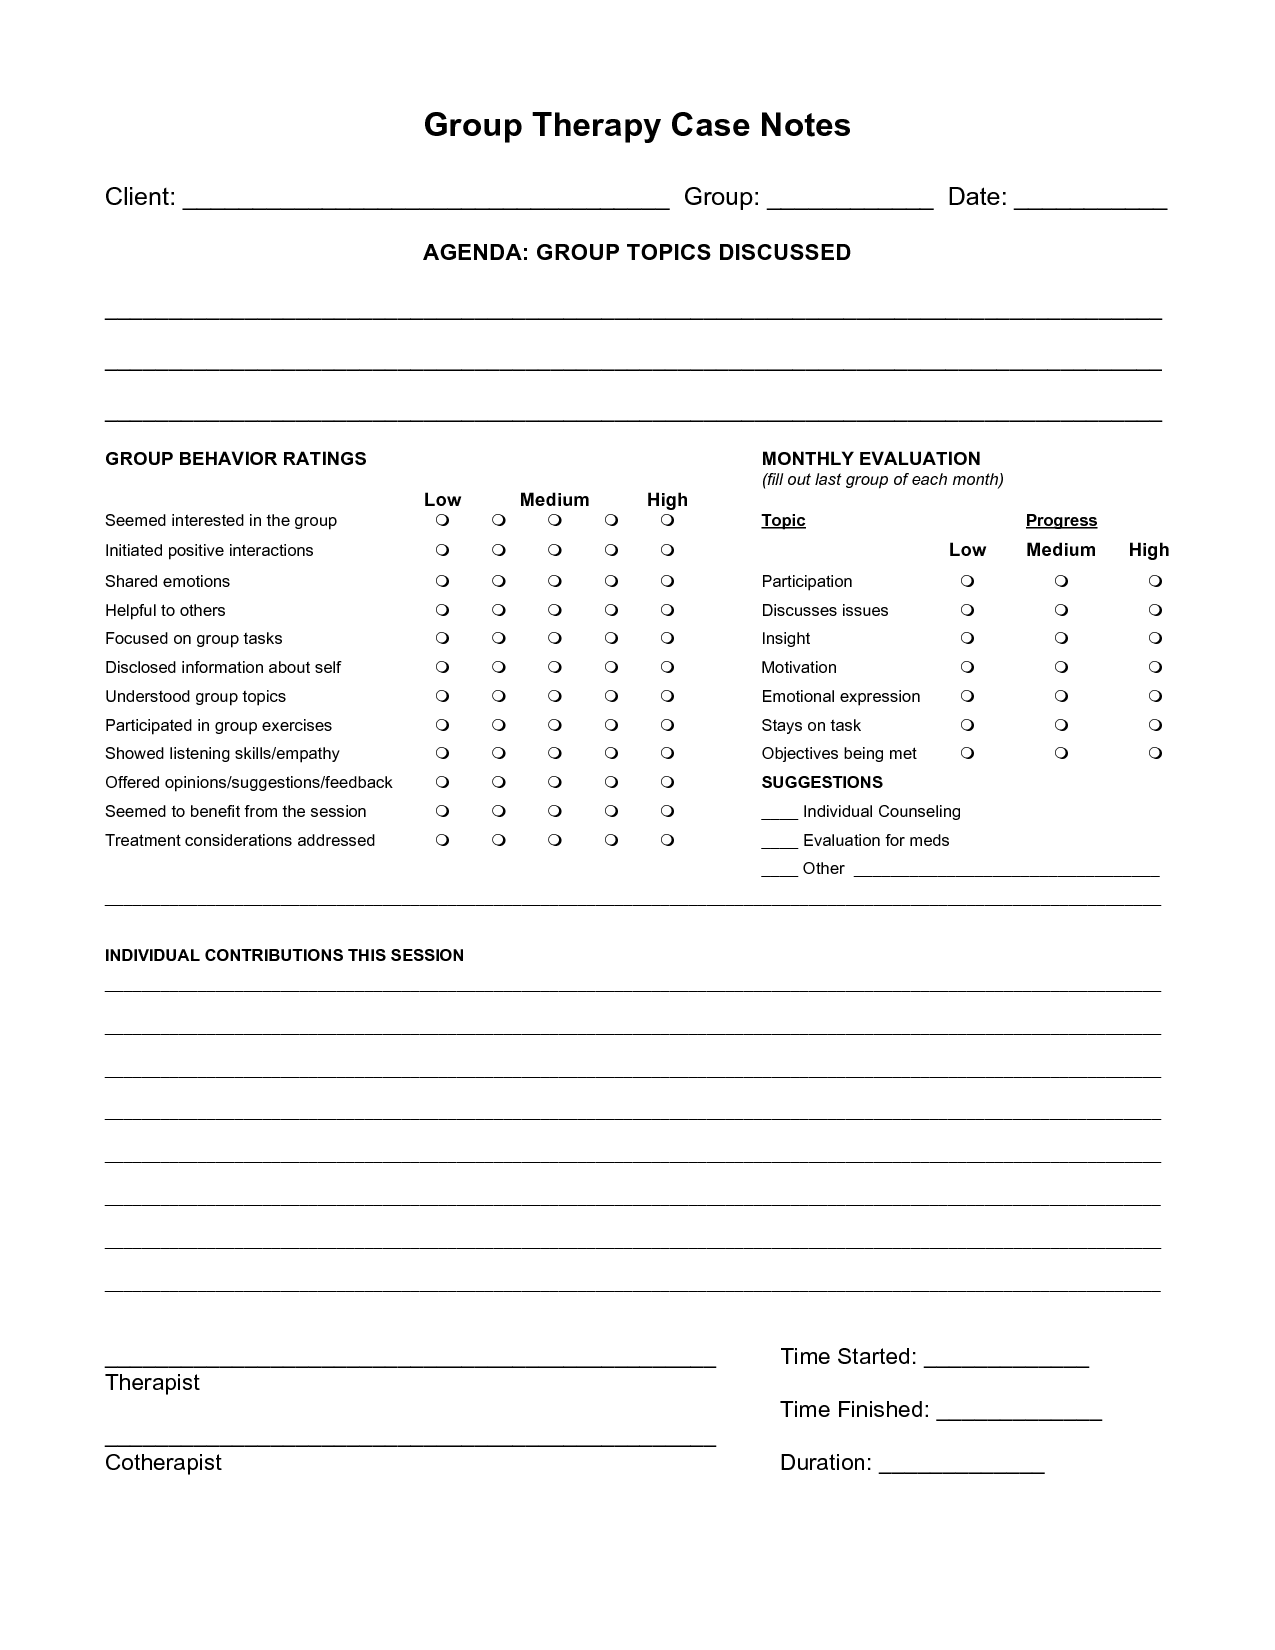 Free Case Note Templates | Group Therapy Case Notes | For Me